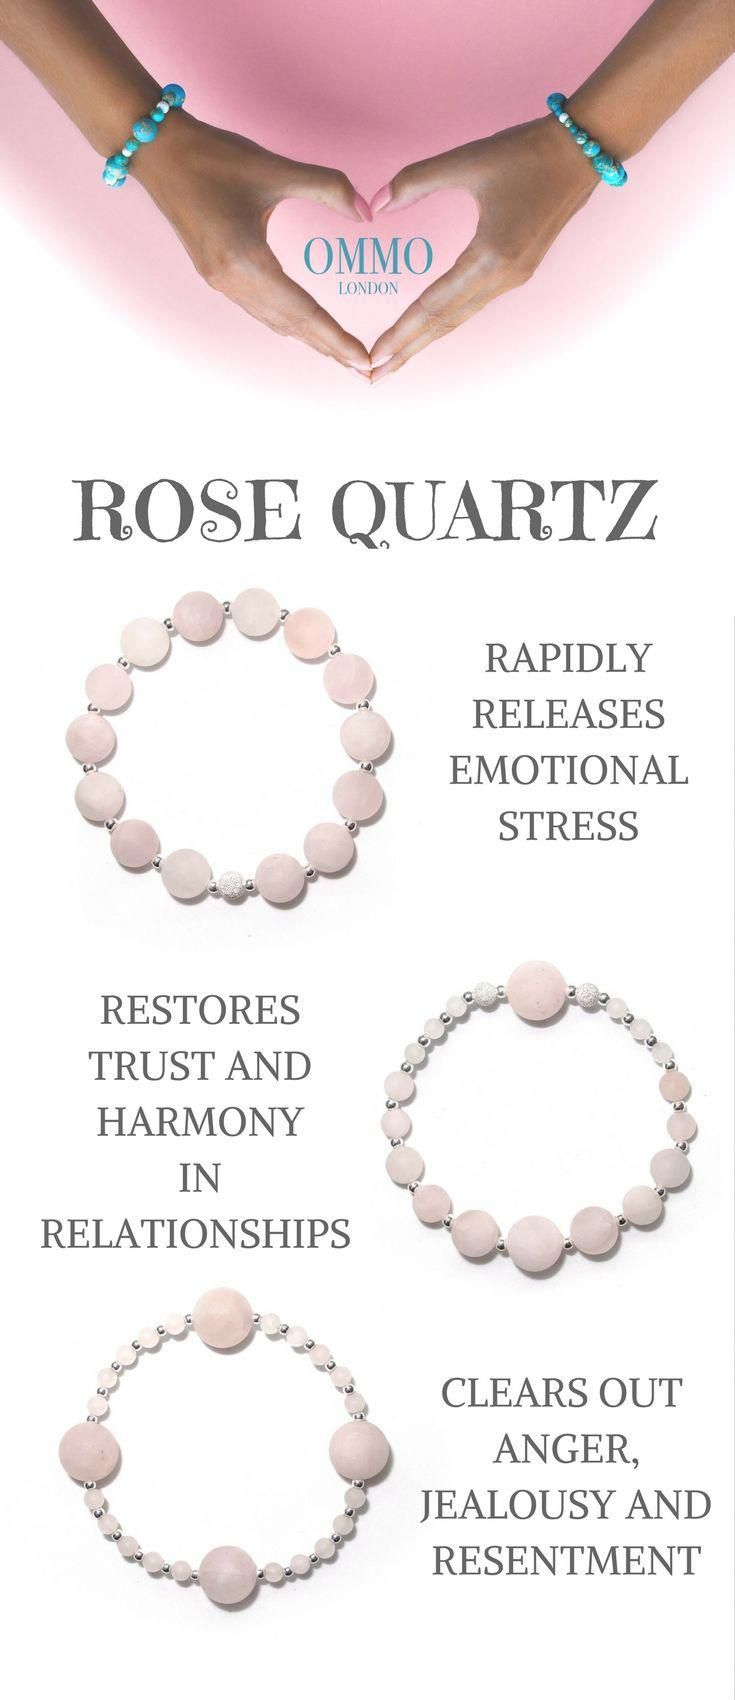 Rose Quartz And Sterling Silver Bracelets Jewellery With A Meaning